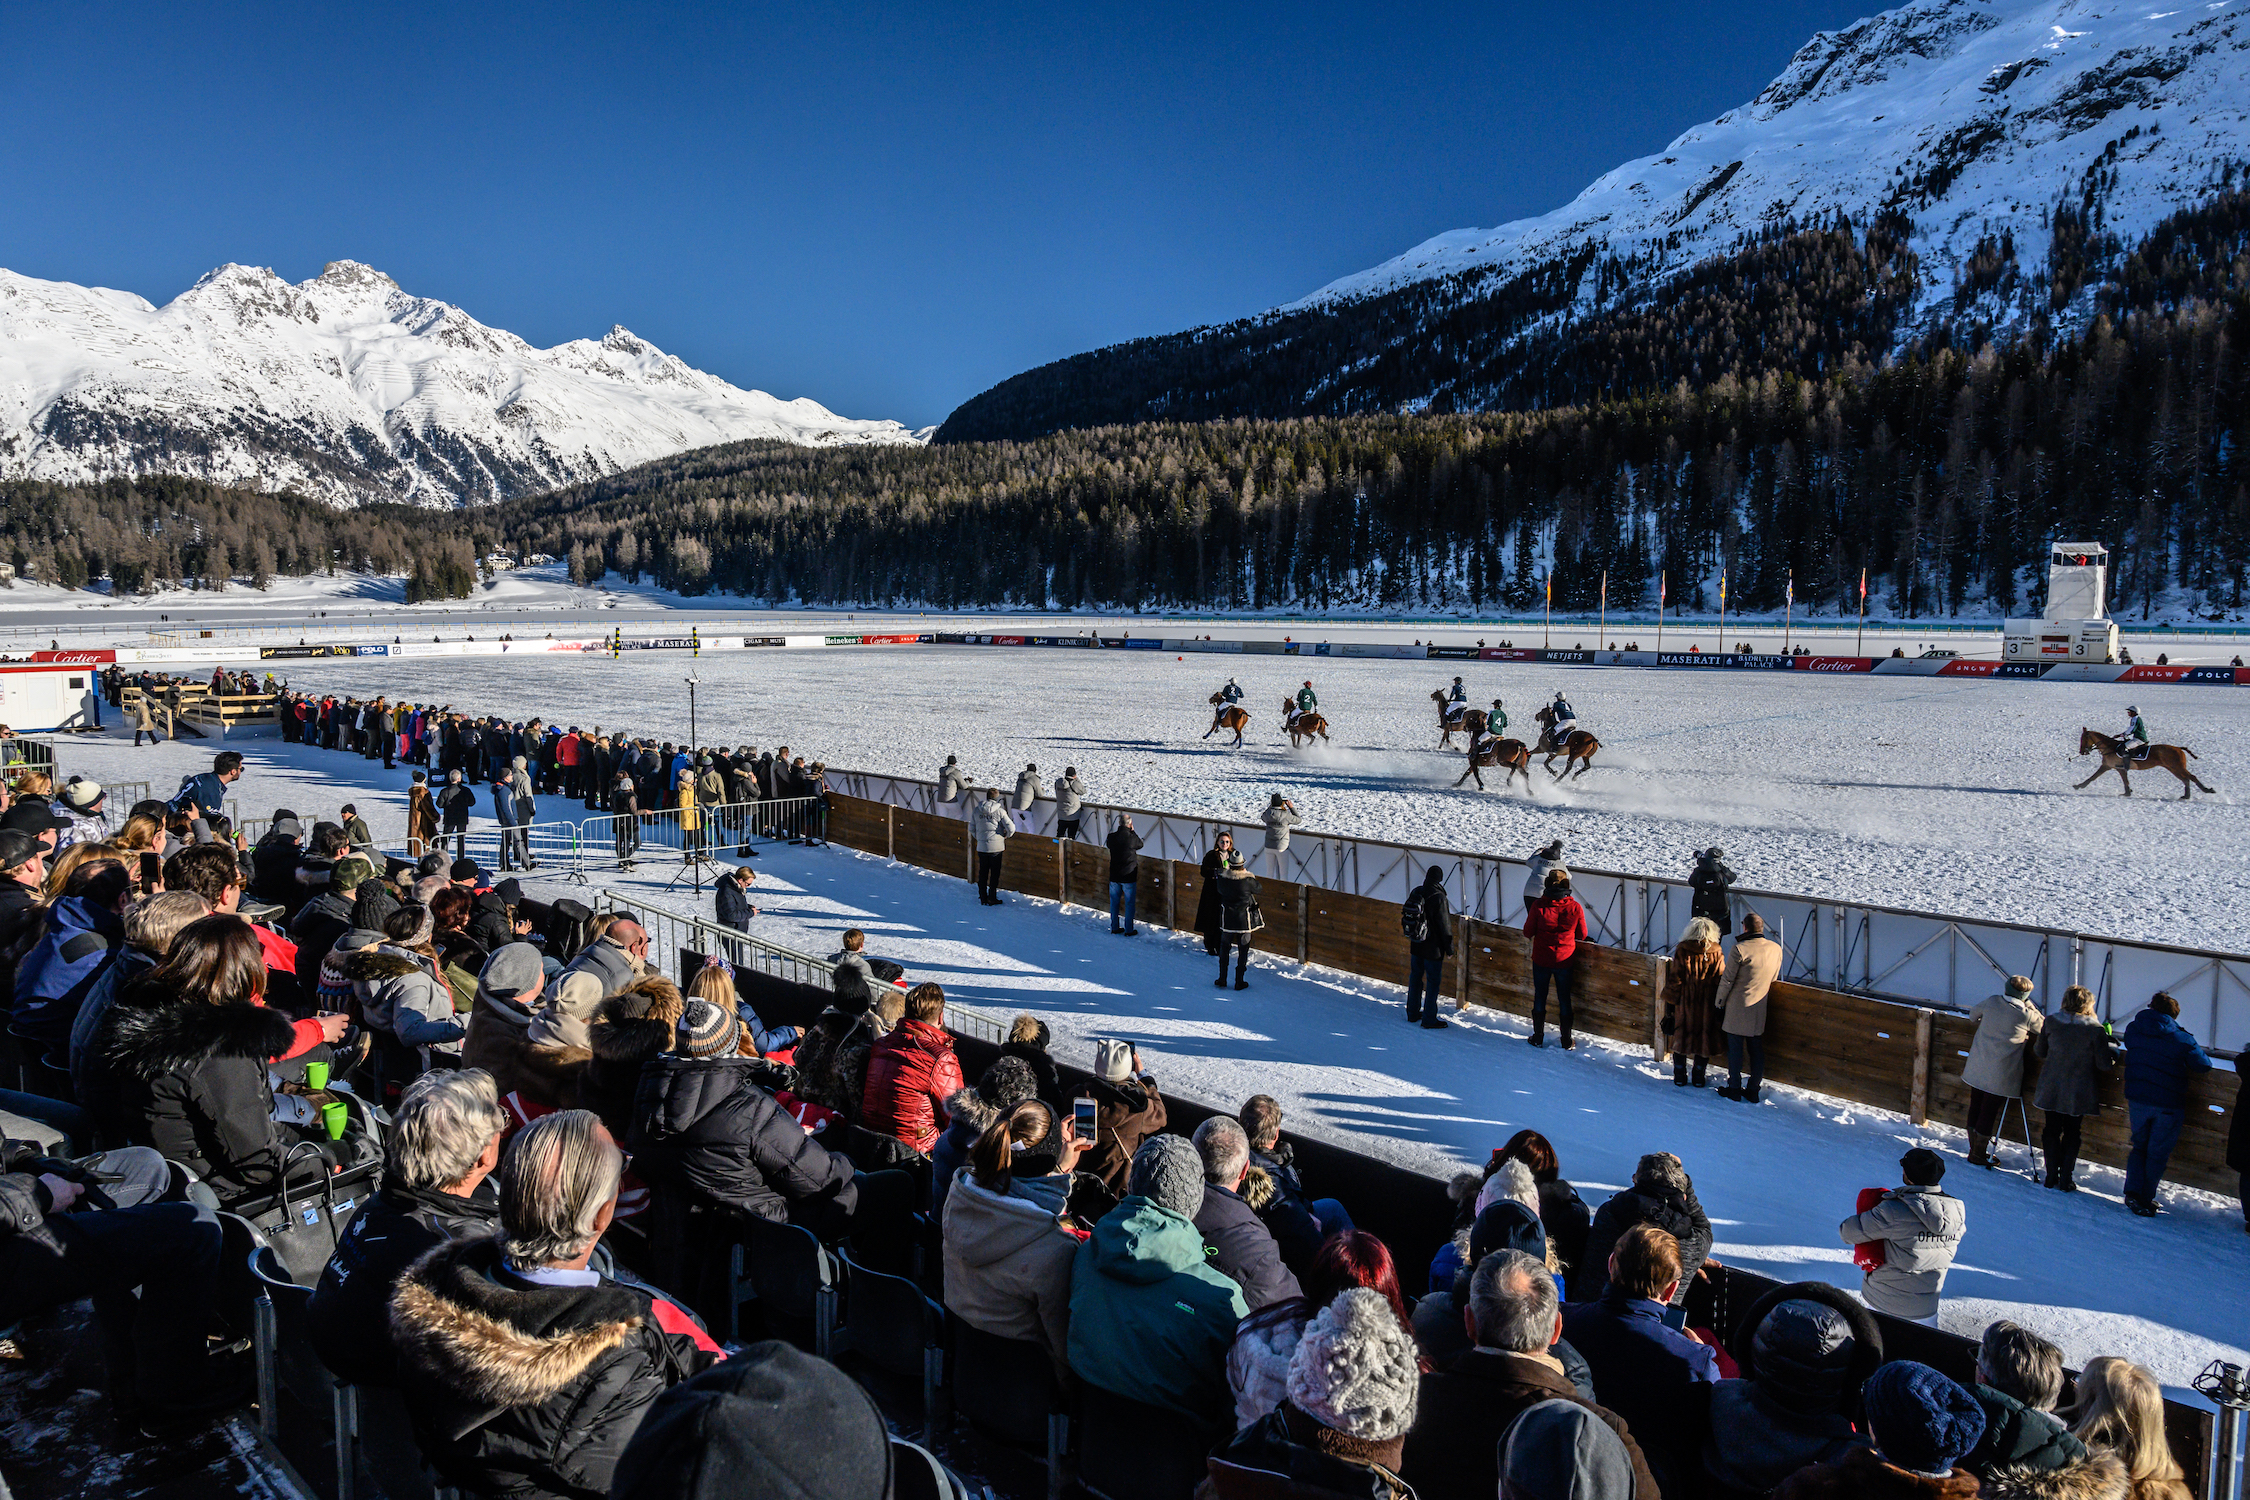 Snow Polo World Cup 2019_copyright: fotoswiss.com/giancarlo cattaneo